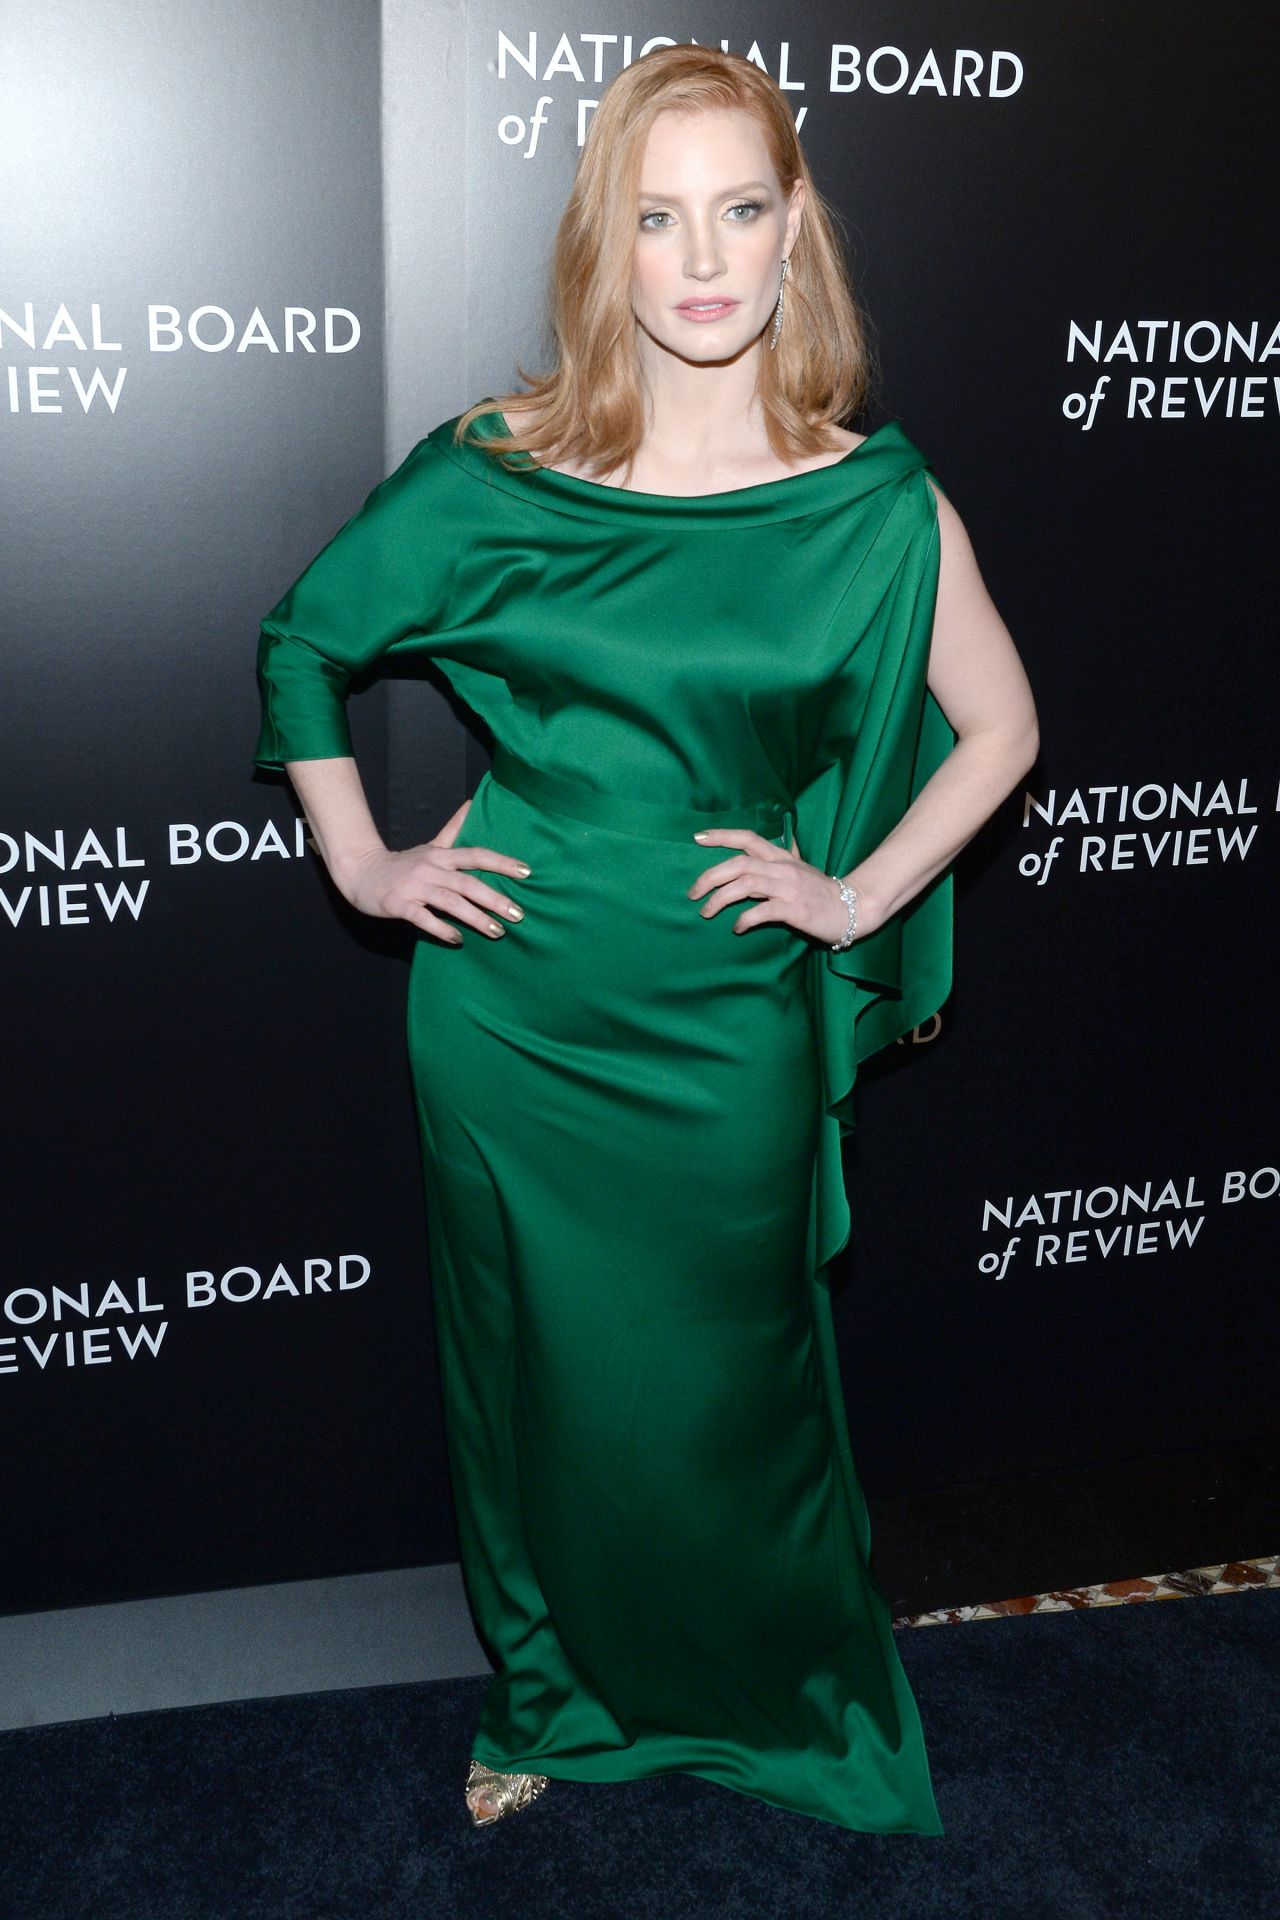 jessica-chastain-2015-national-board-of-review-gala-in-new-york-city-12